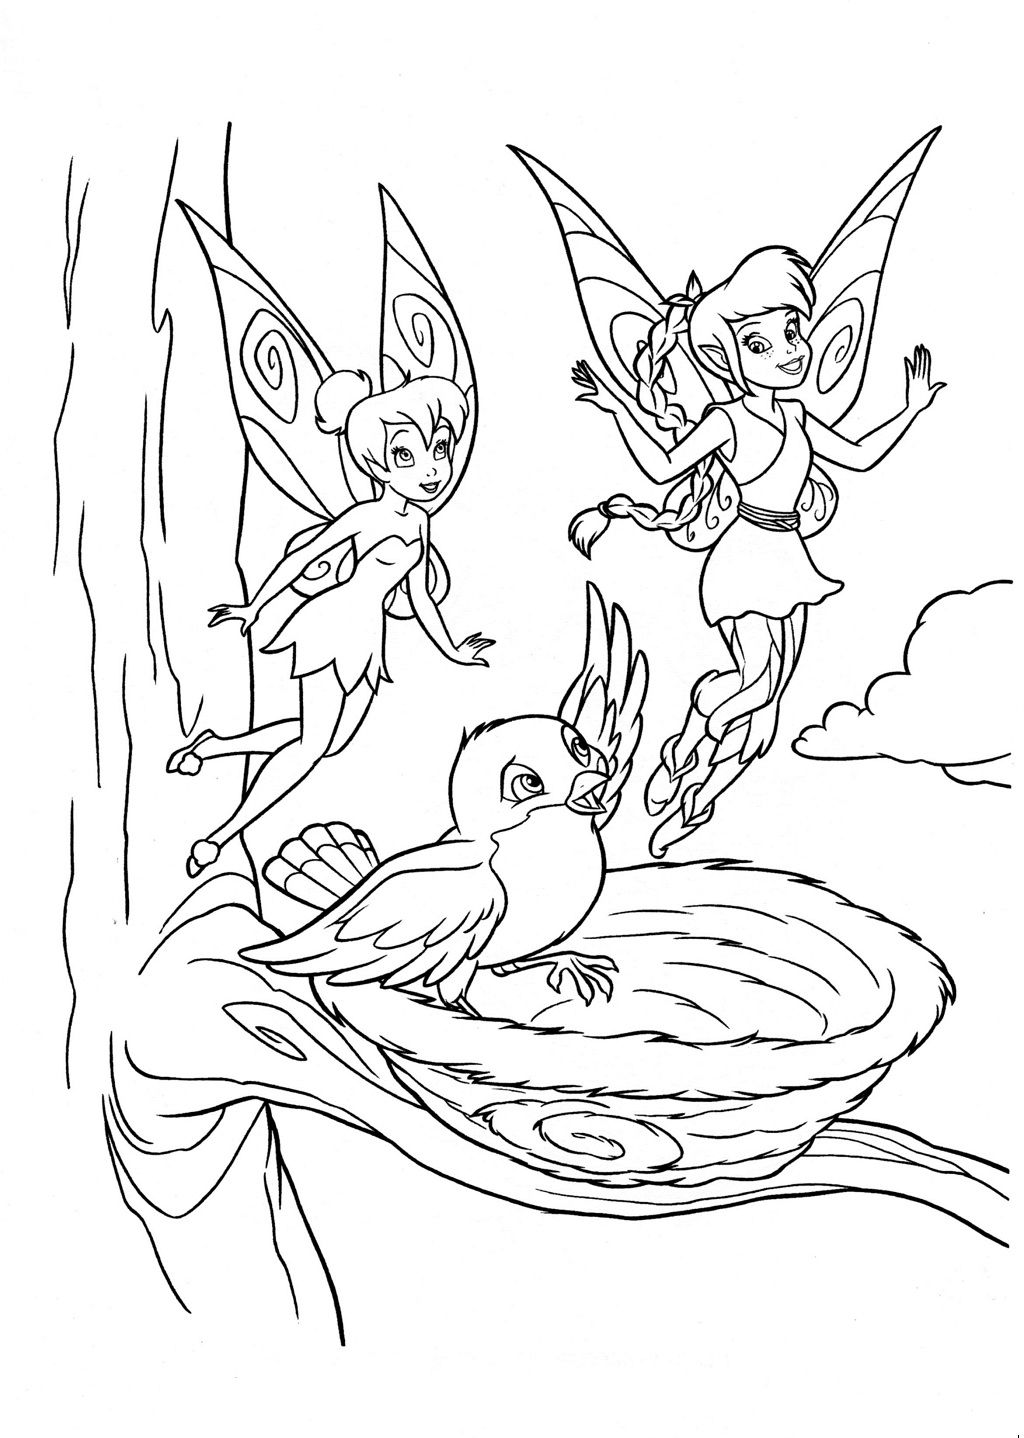 Free printable tinkerbell coloring pages kids, Tinker bell is a very ...